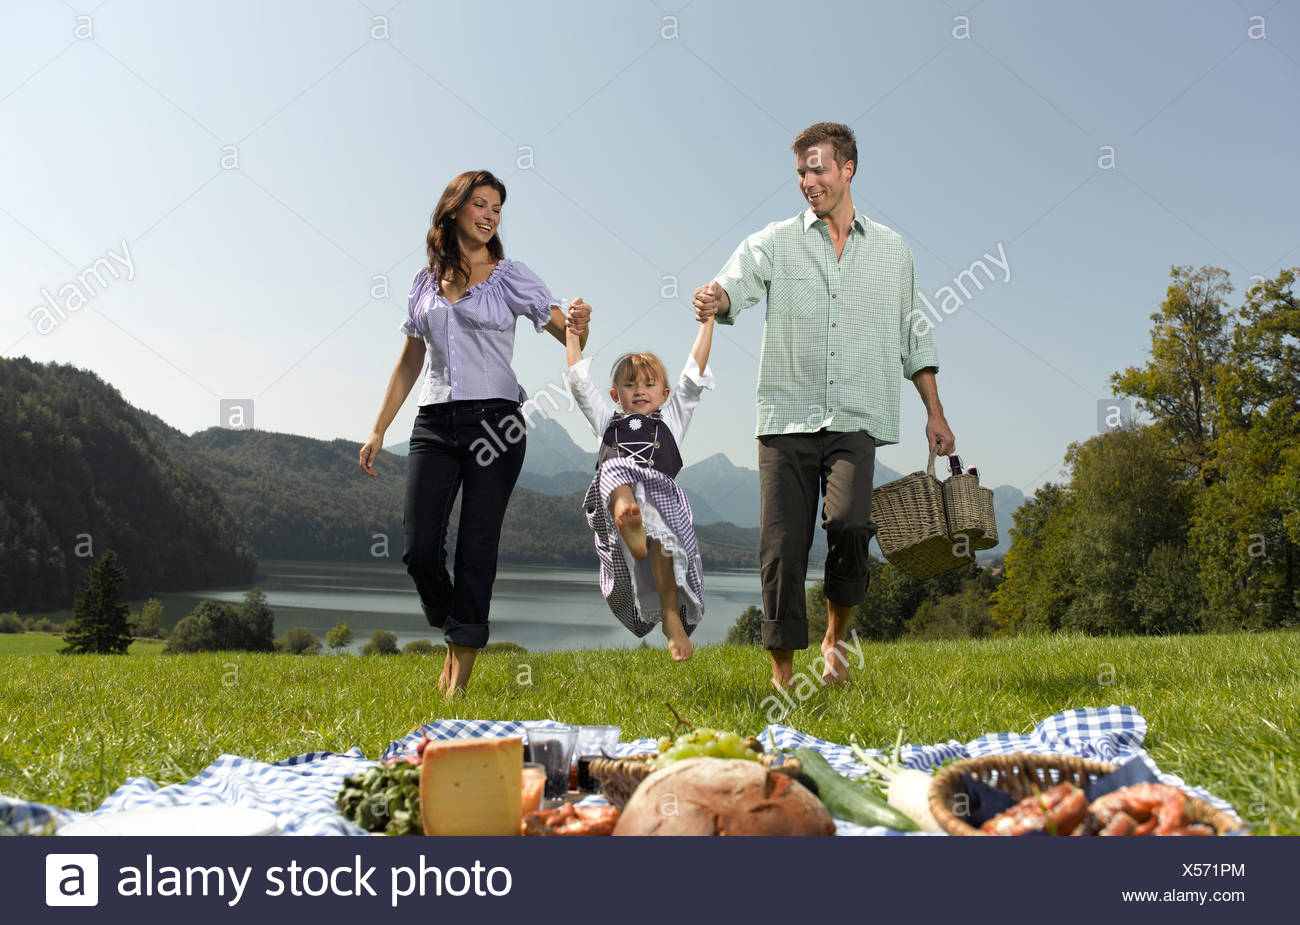 Parents walking through the grass lifting their daughter in the air - Stock Image